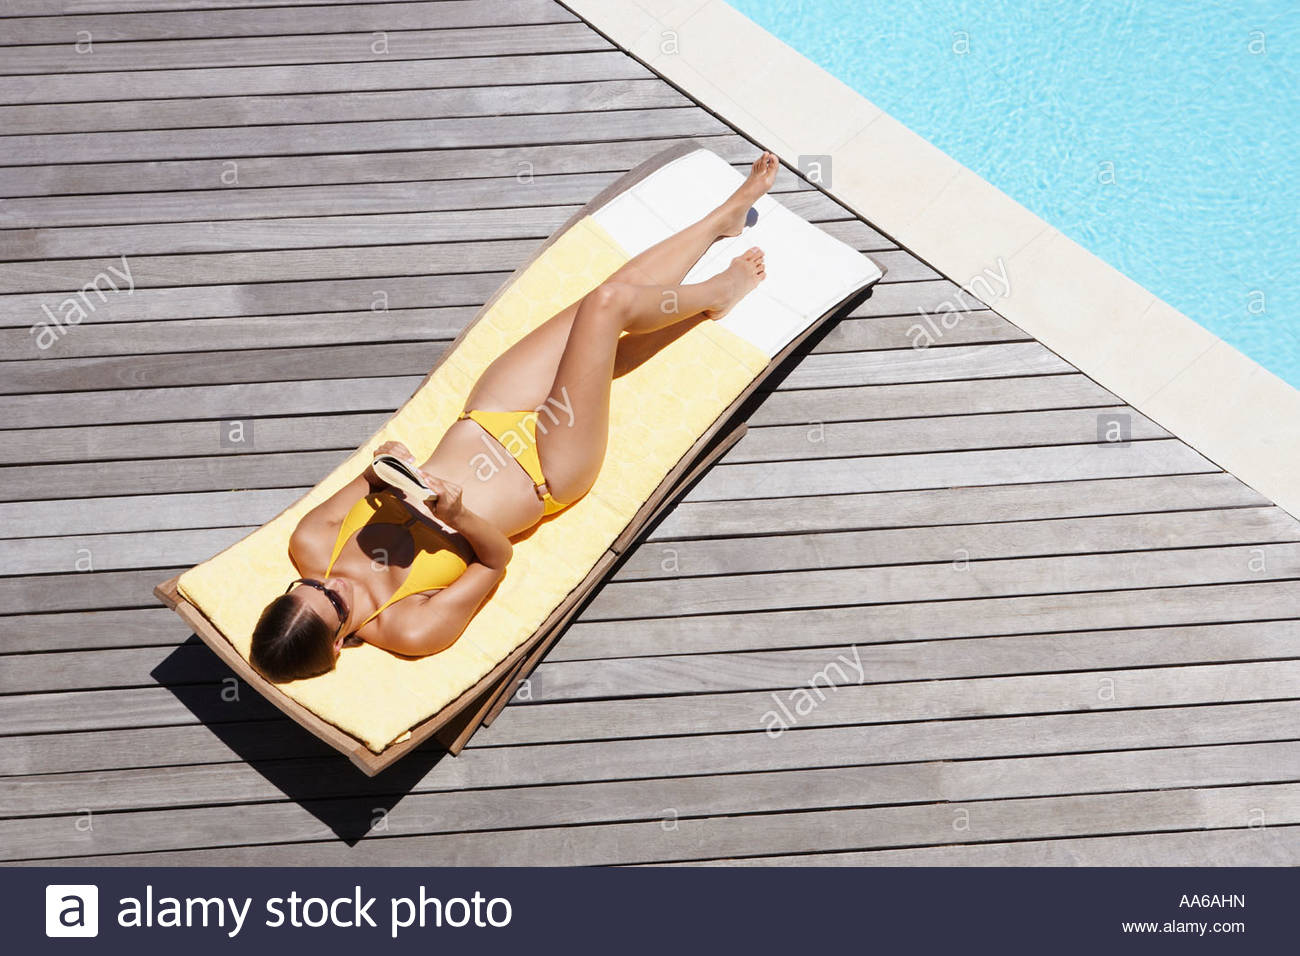 Woman sunbathing on deck outdoors with book - Stock Image